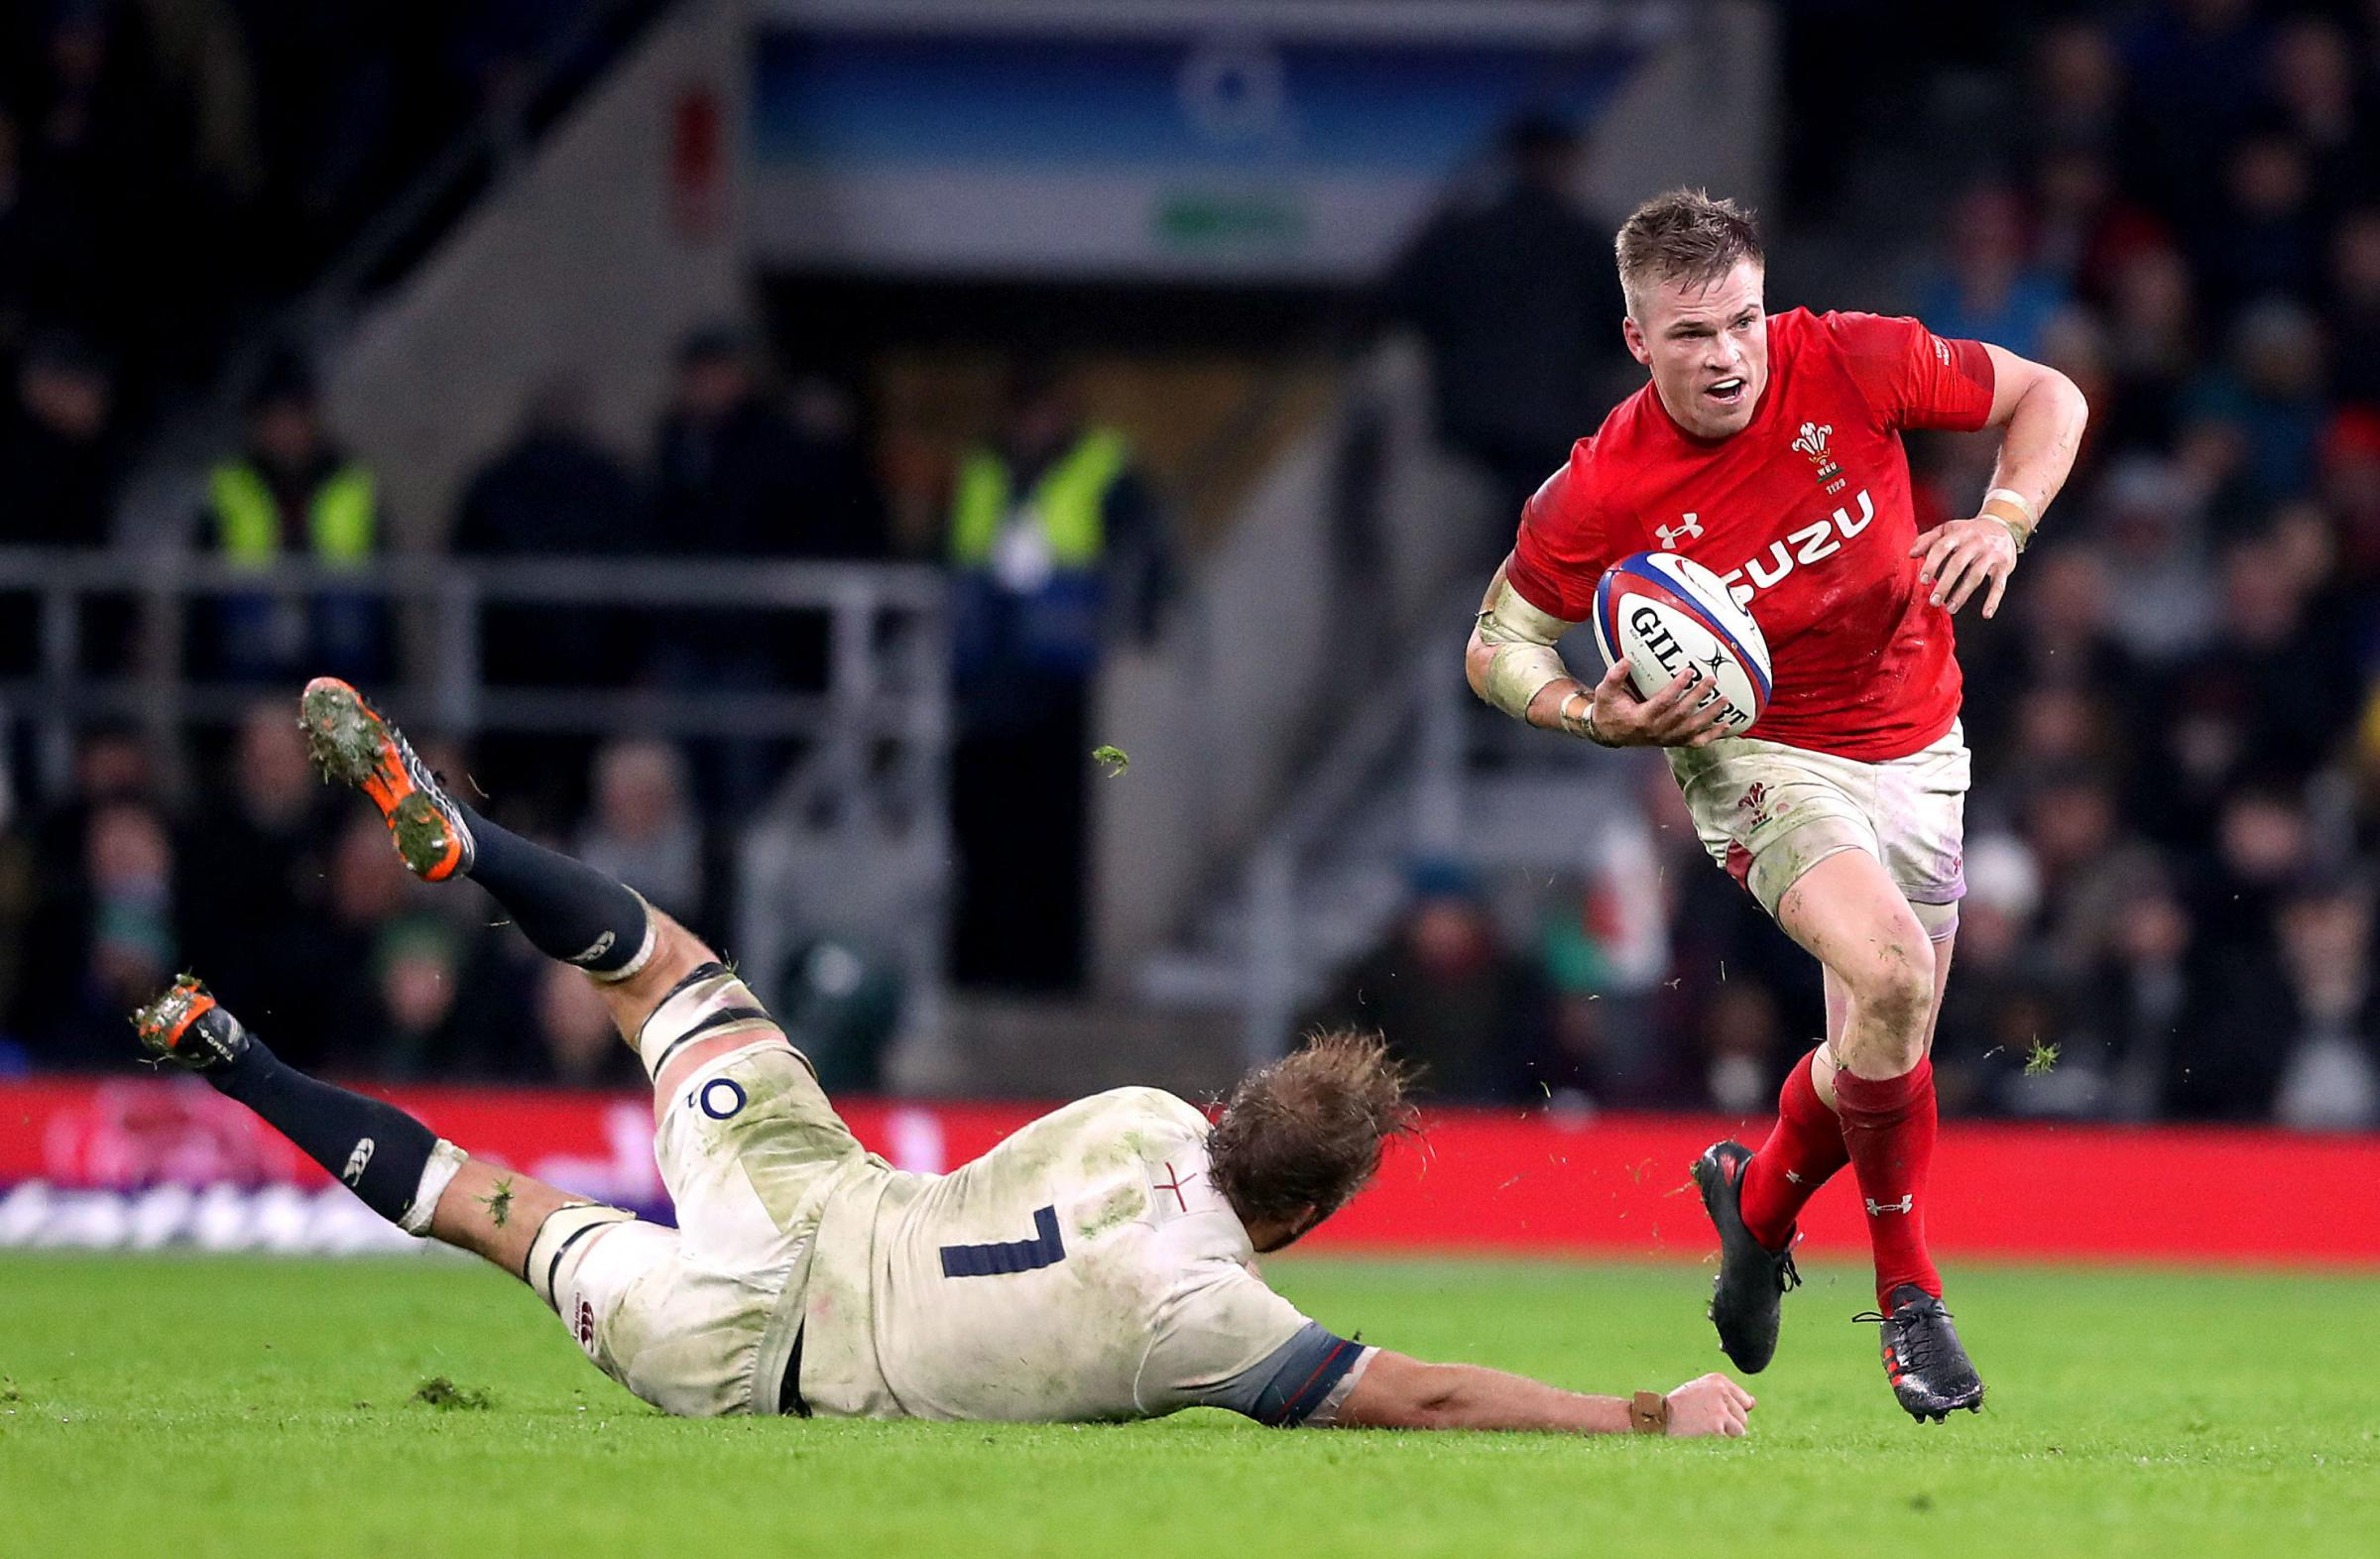 Wales' Gareth Anscombe (right) during the NatWest 6 Nations match at Twickenham Stadium, London. PRESS ASSOCIATION Photo. Picture date: Saturday February 10, 2018. See PA story RUGBYU England. Photo credit should read: Adam Davy/PA Wire. RESTRICTIONS: